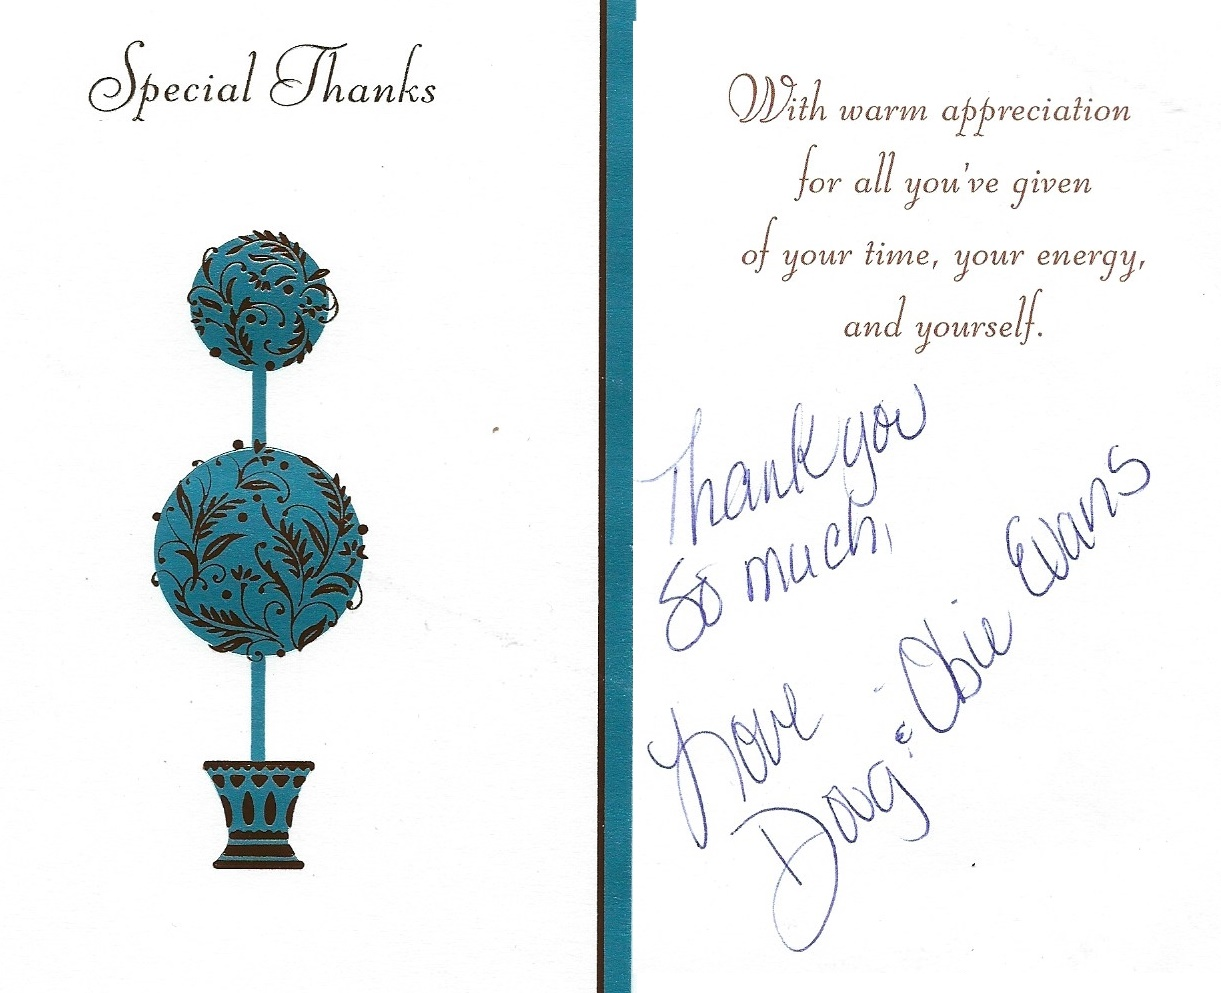 A thank you card from a satisfied customer